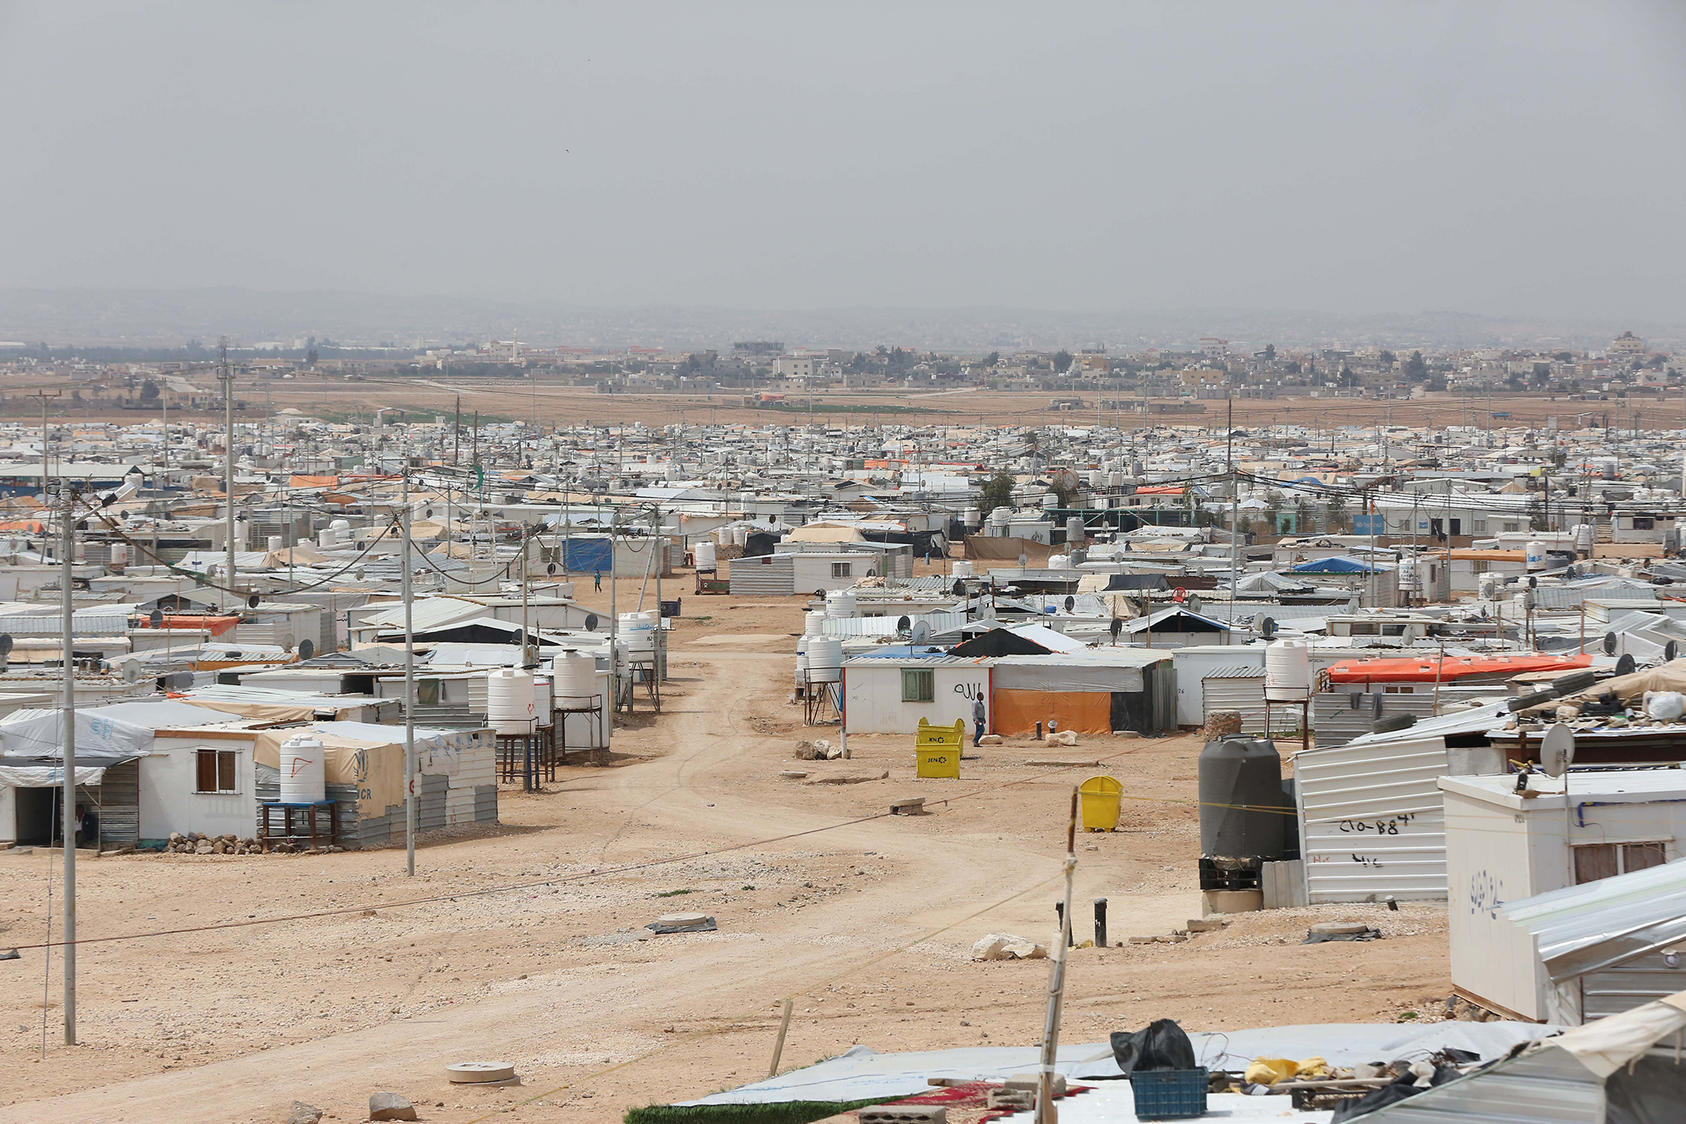 Zaatari Refugee Camp in Jordan (UN Photo/Sahem Rababah)